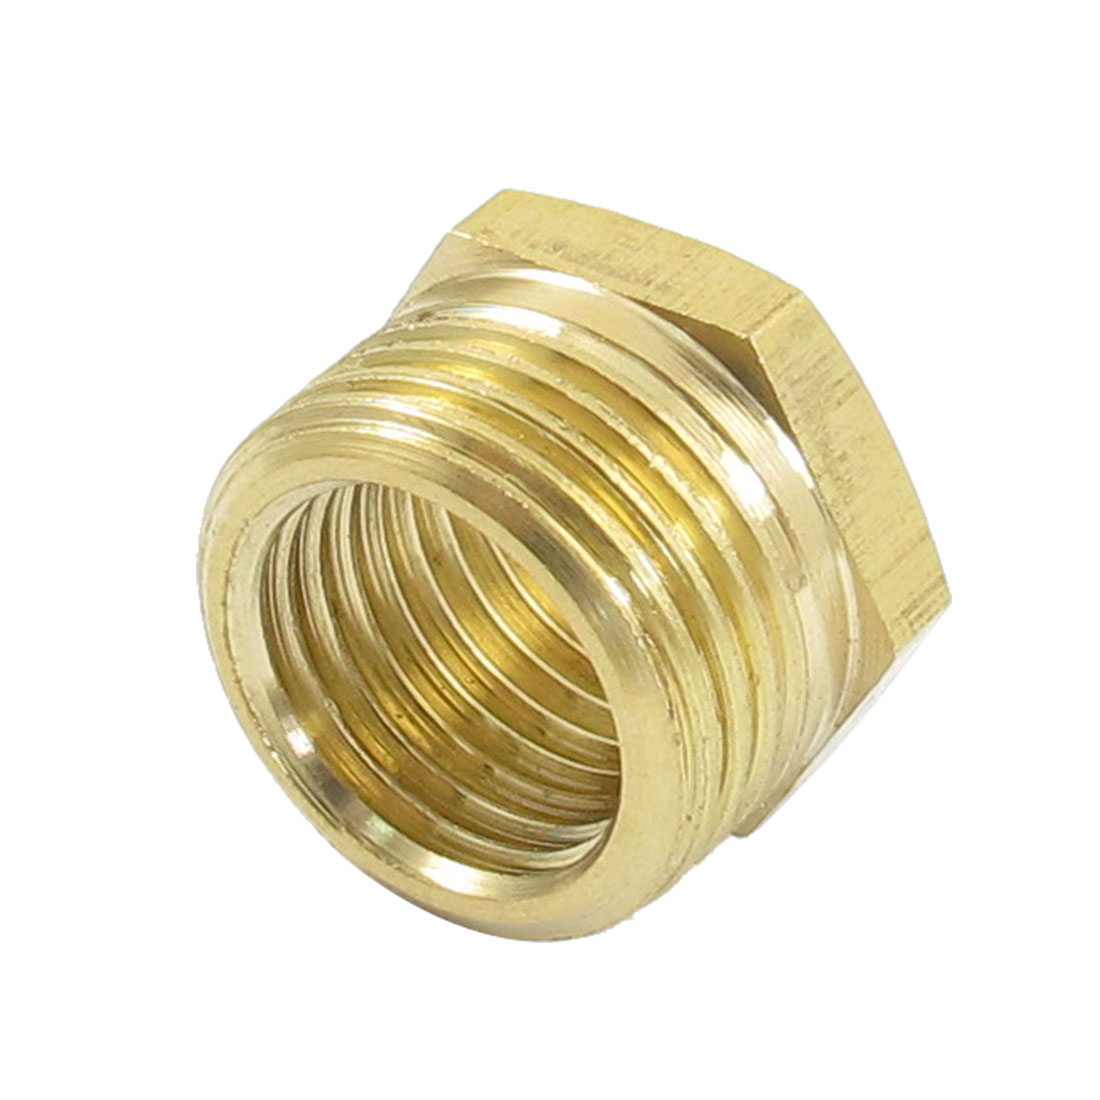 16mm Male to 12mm Female Brass Hex Reducing Bushing Adapter Pipe Fitting